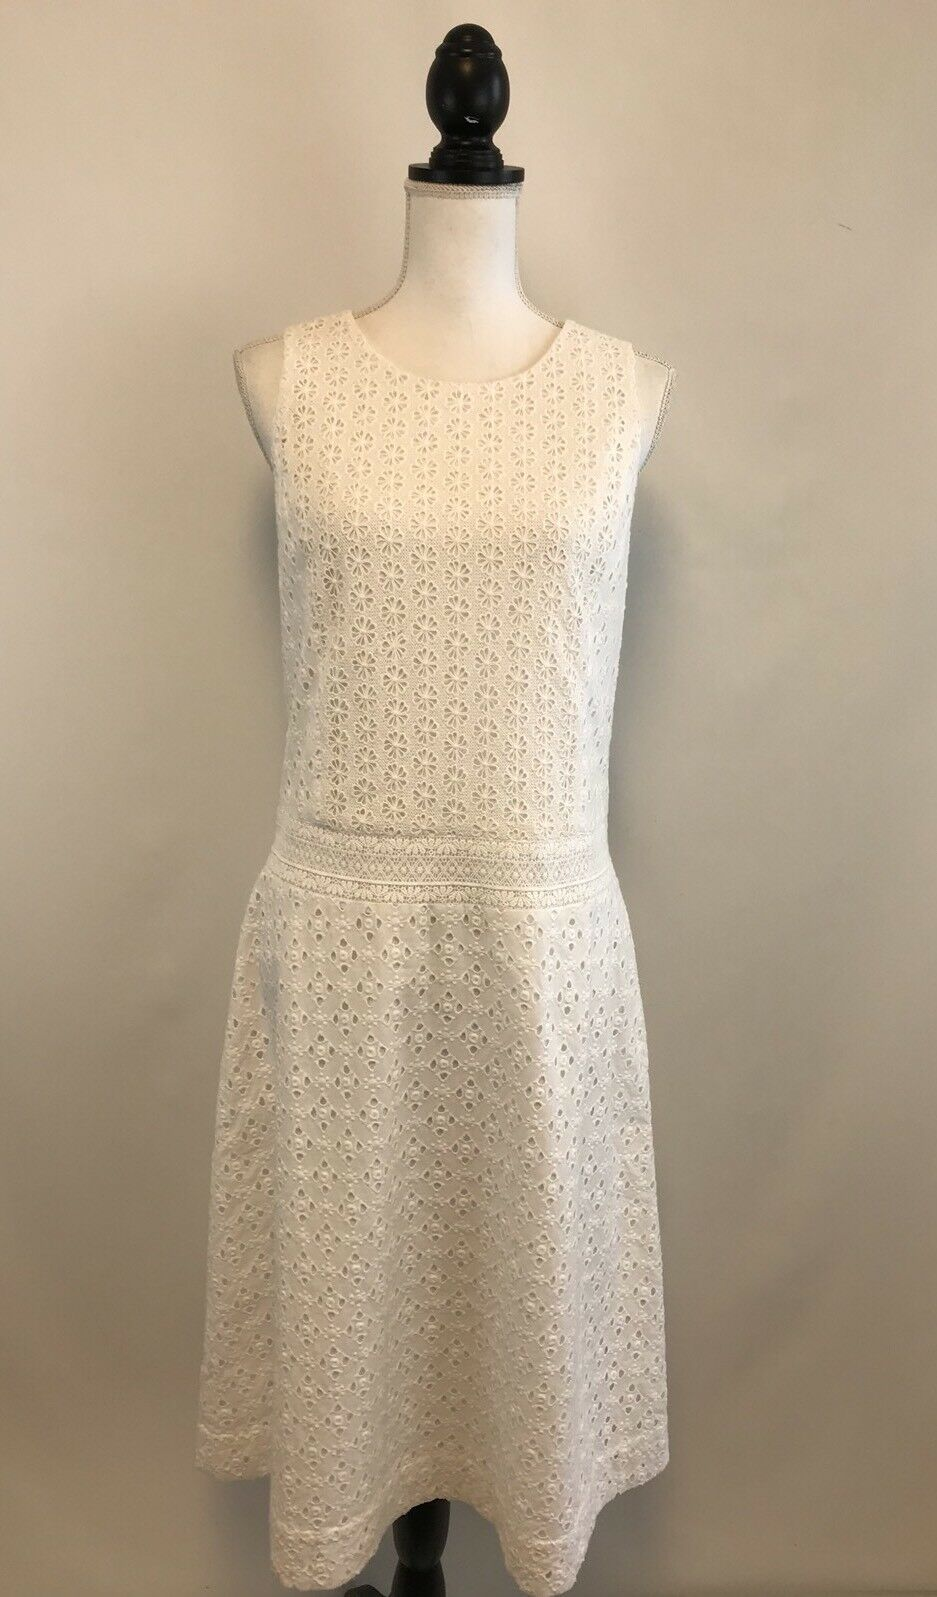 NWT J CREW COLLECTION TRIPLED EYELET DRESS SZ 6 Weiß SOLD OUT